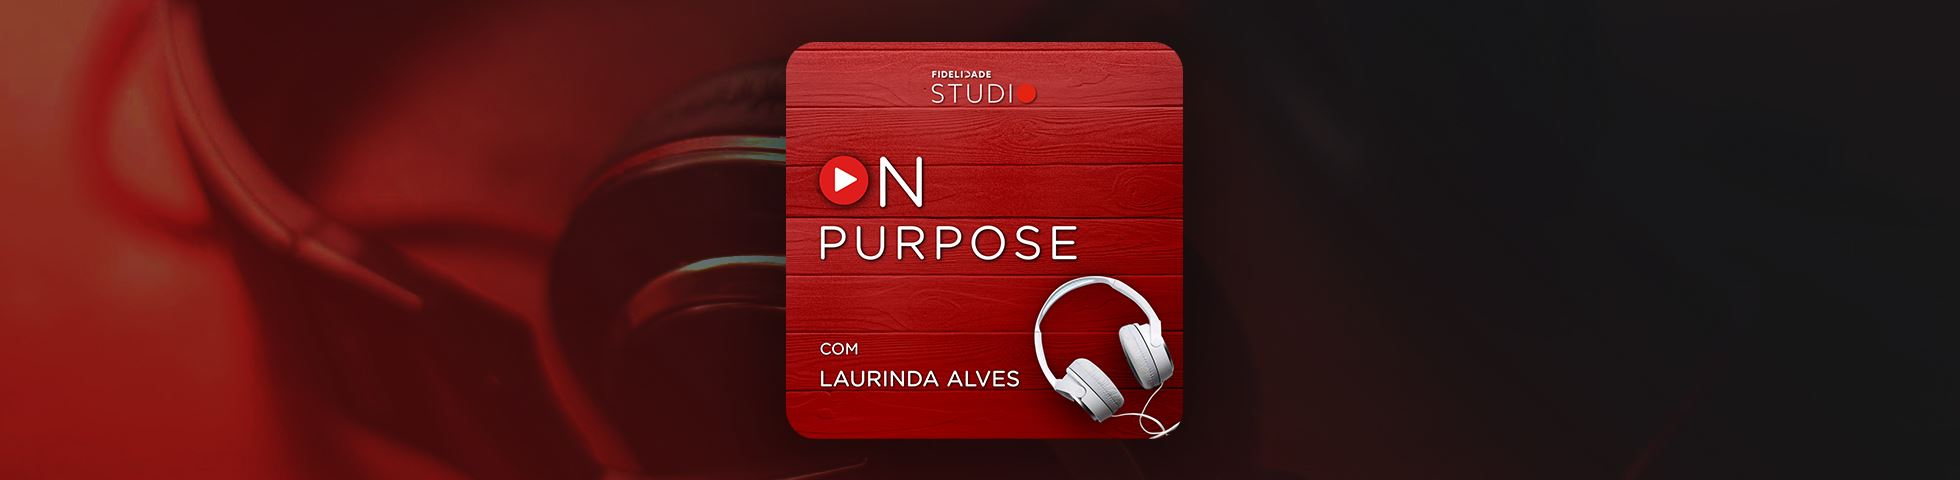 Nova SBE Academy of Purpose Launches the Fidelidade Studio ON Purpose Podcasts